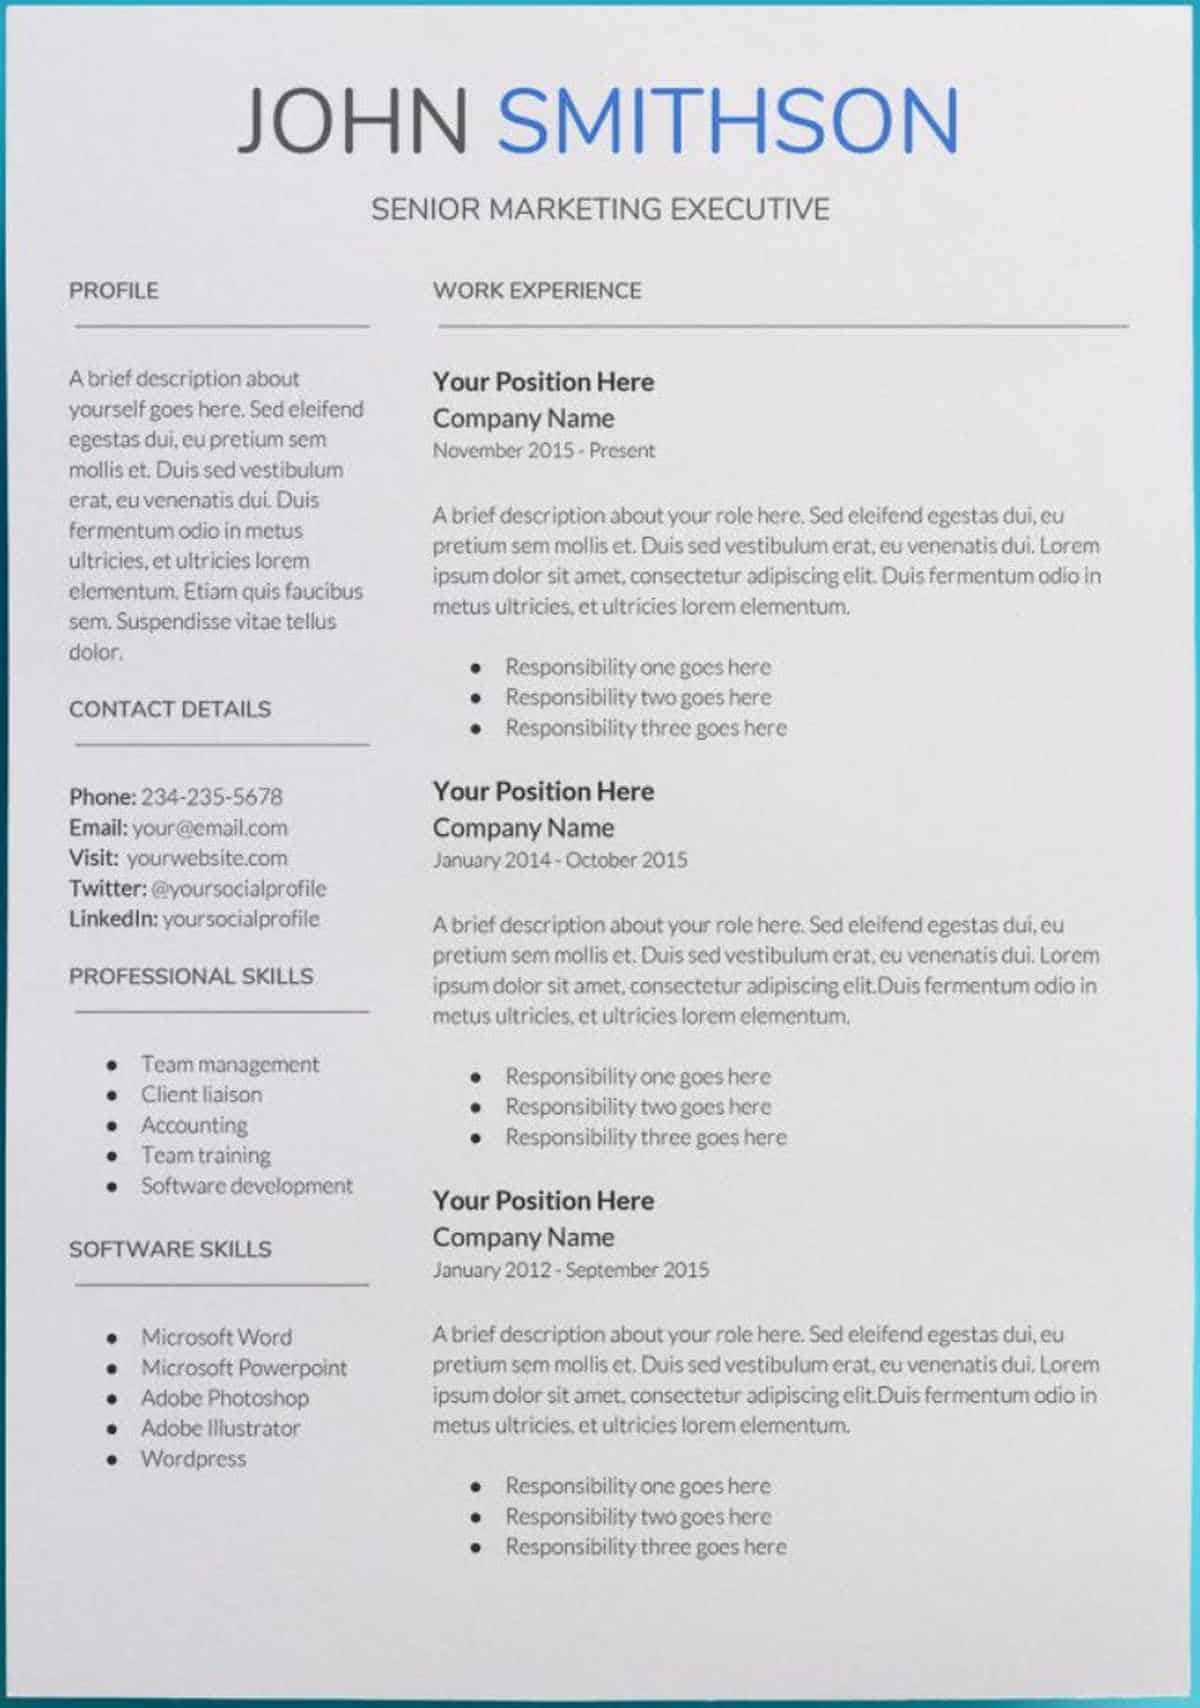 google docs resume templates downloadable pdfs examples saturn template free janitor Resume Resume Examples Google Docs